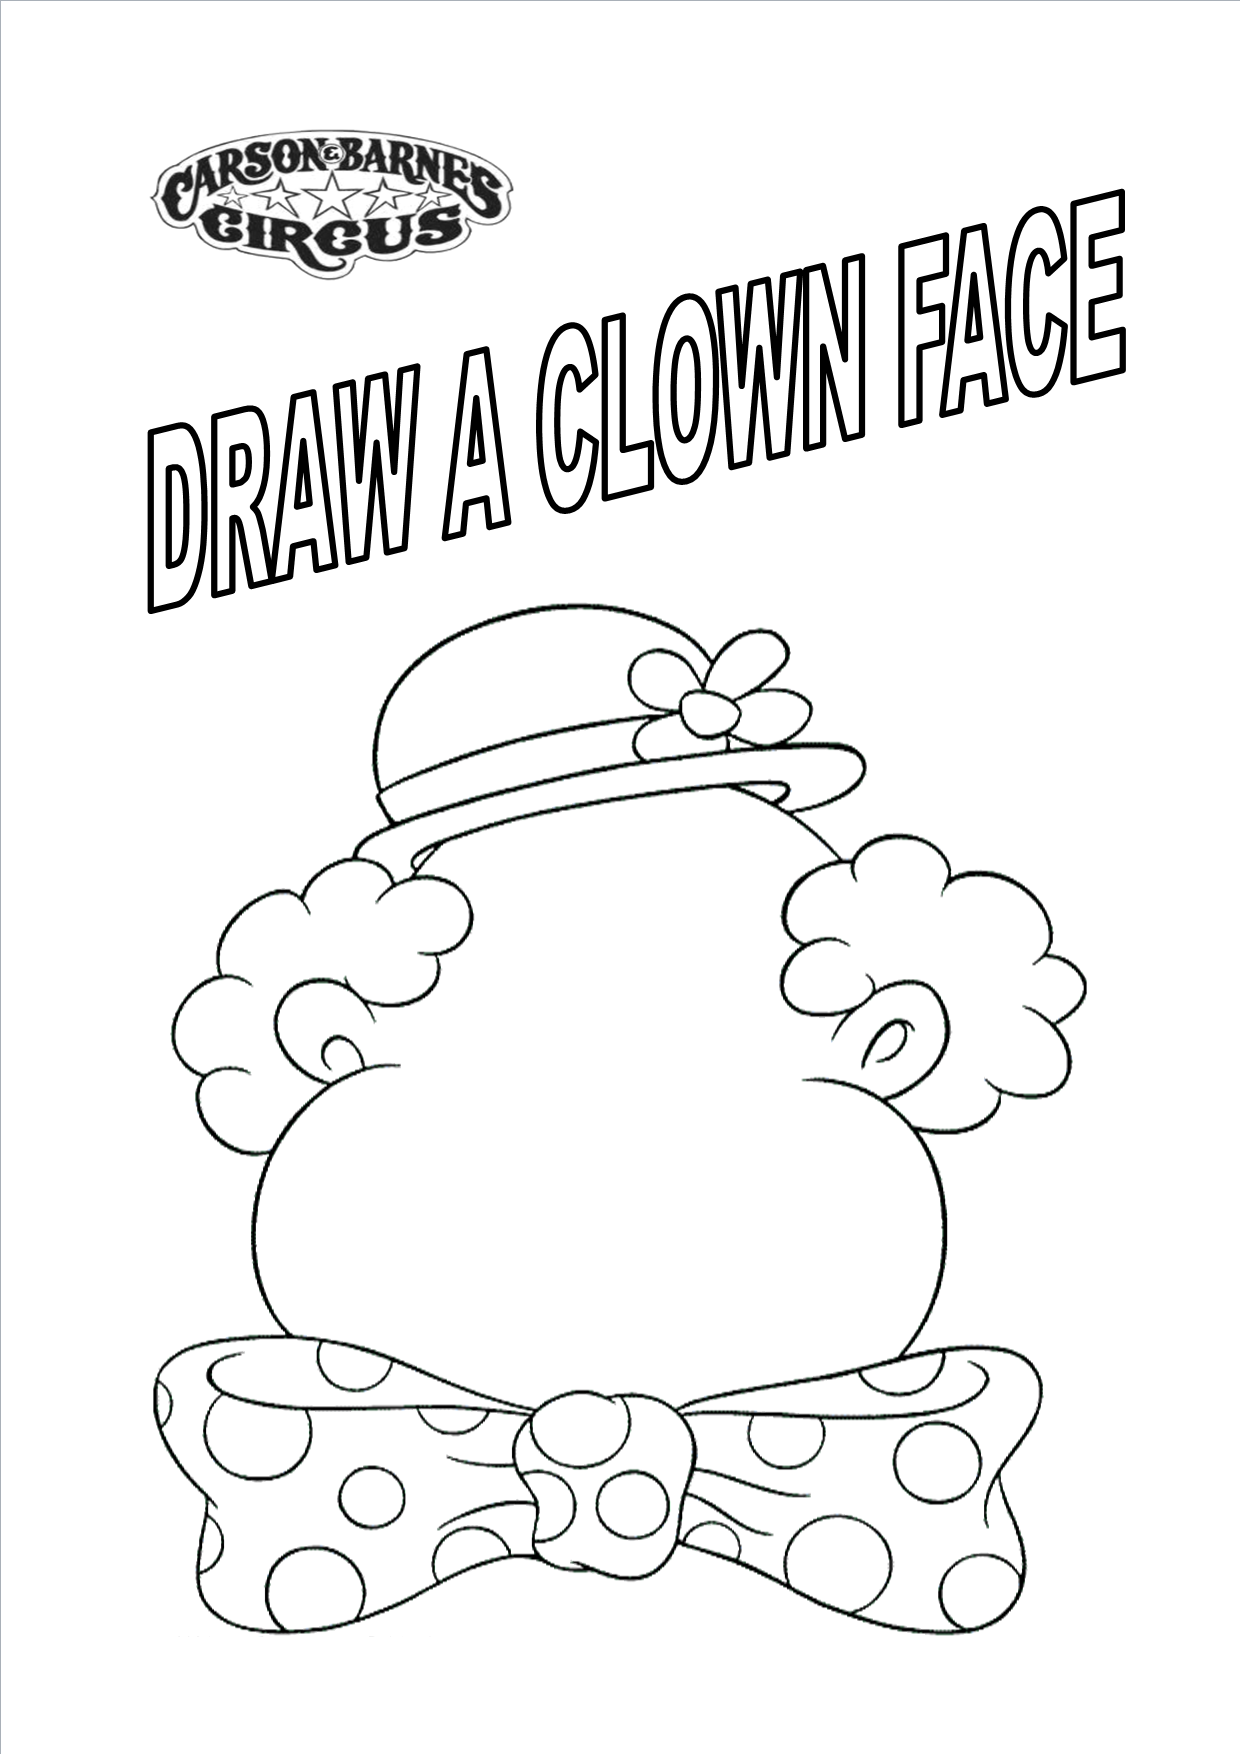 coloring page draw a clown face - Circus Coloring Pages